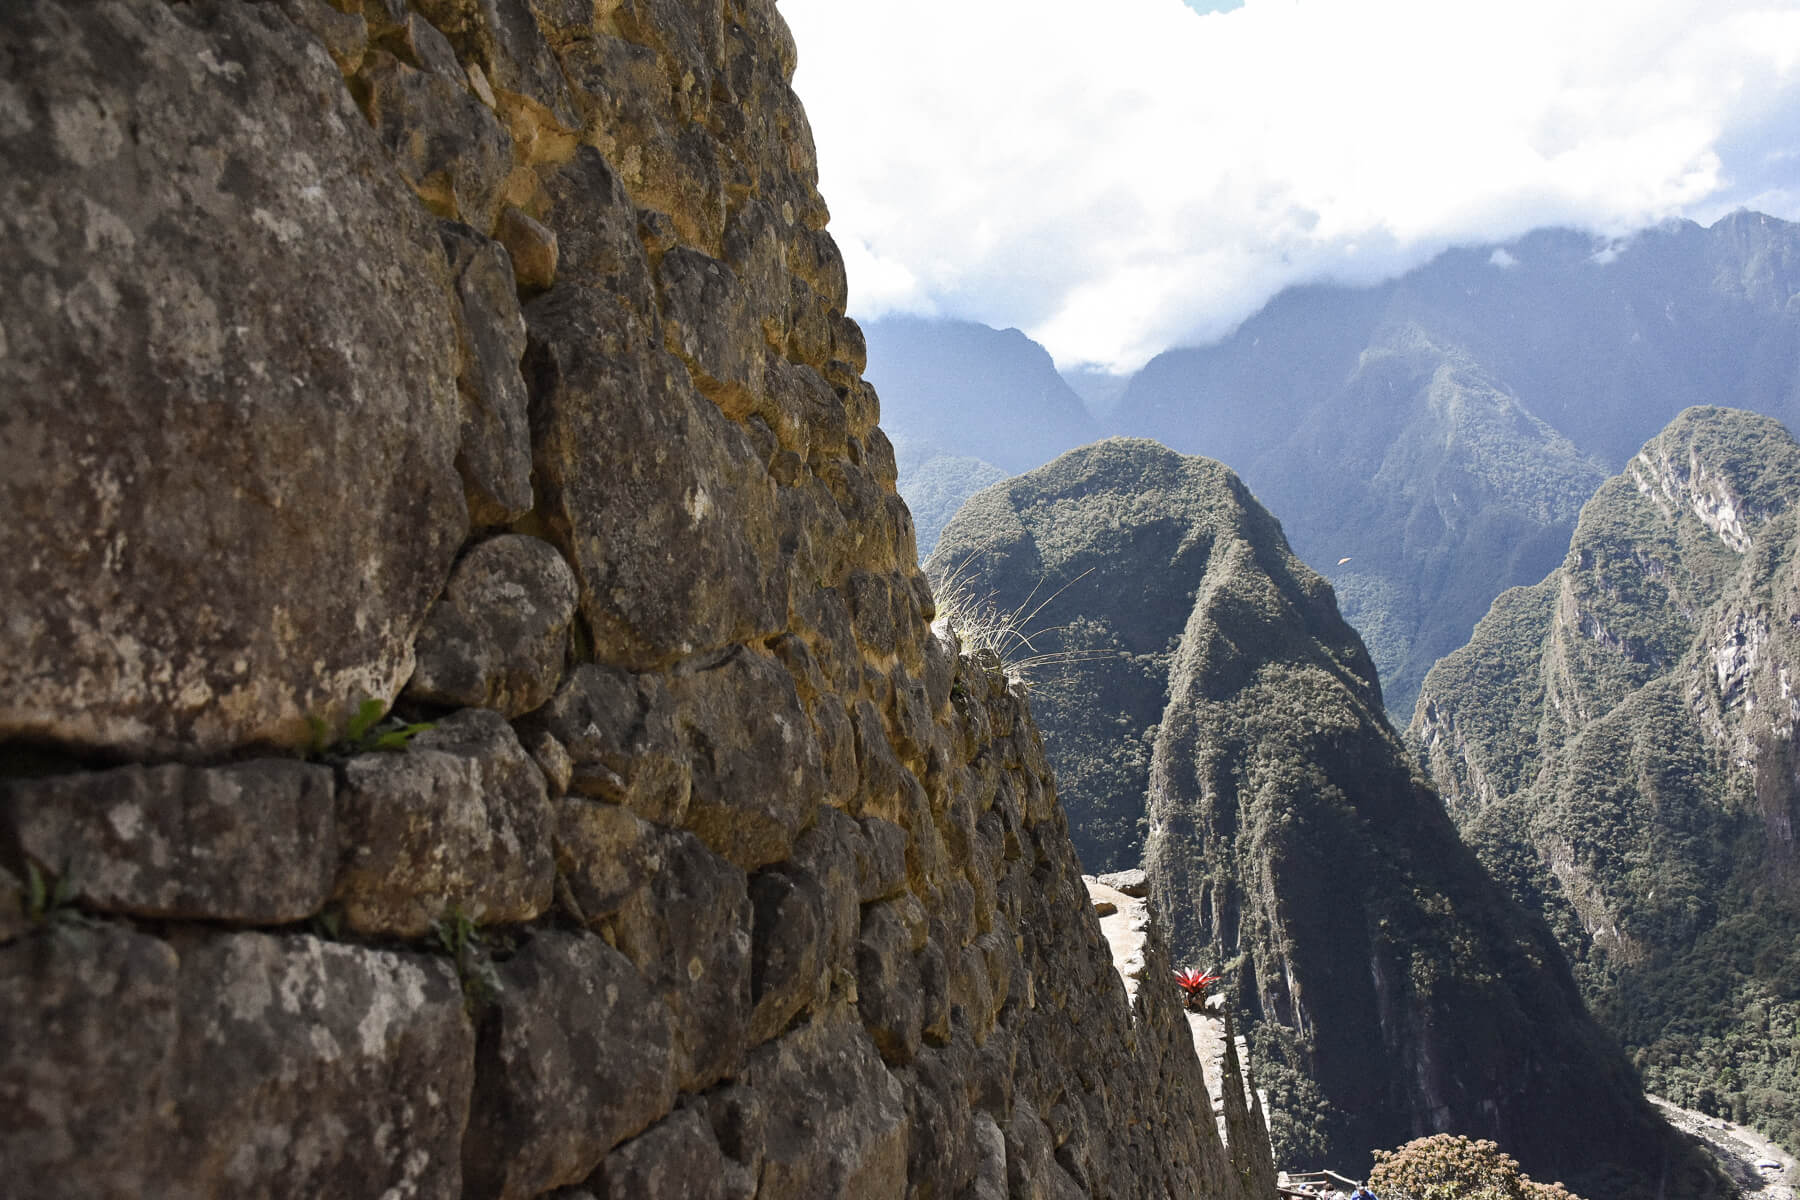 Focus of Stone wall with the protruding mountains rising from the earth behind it